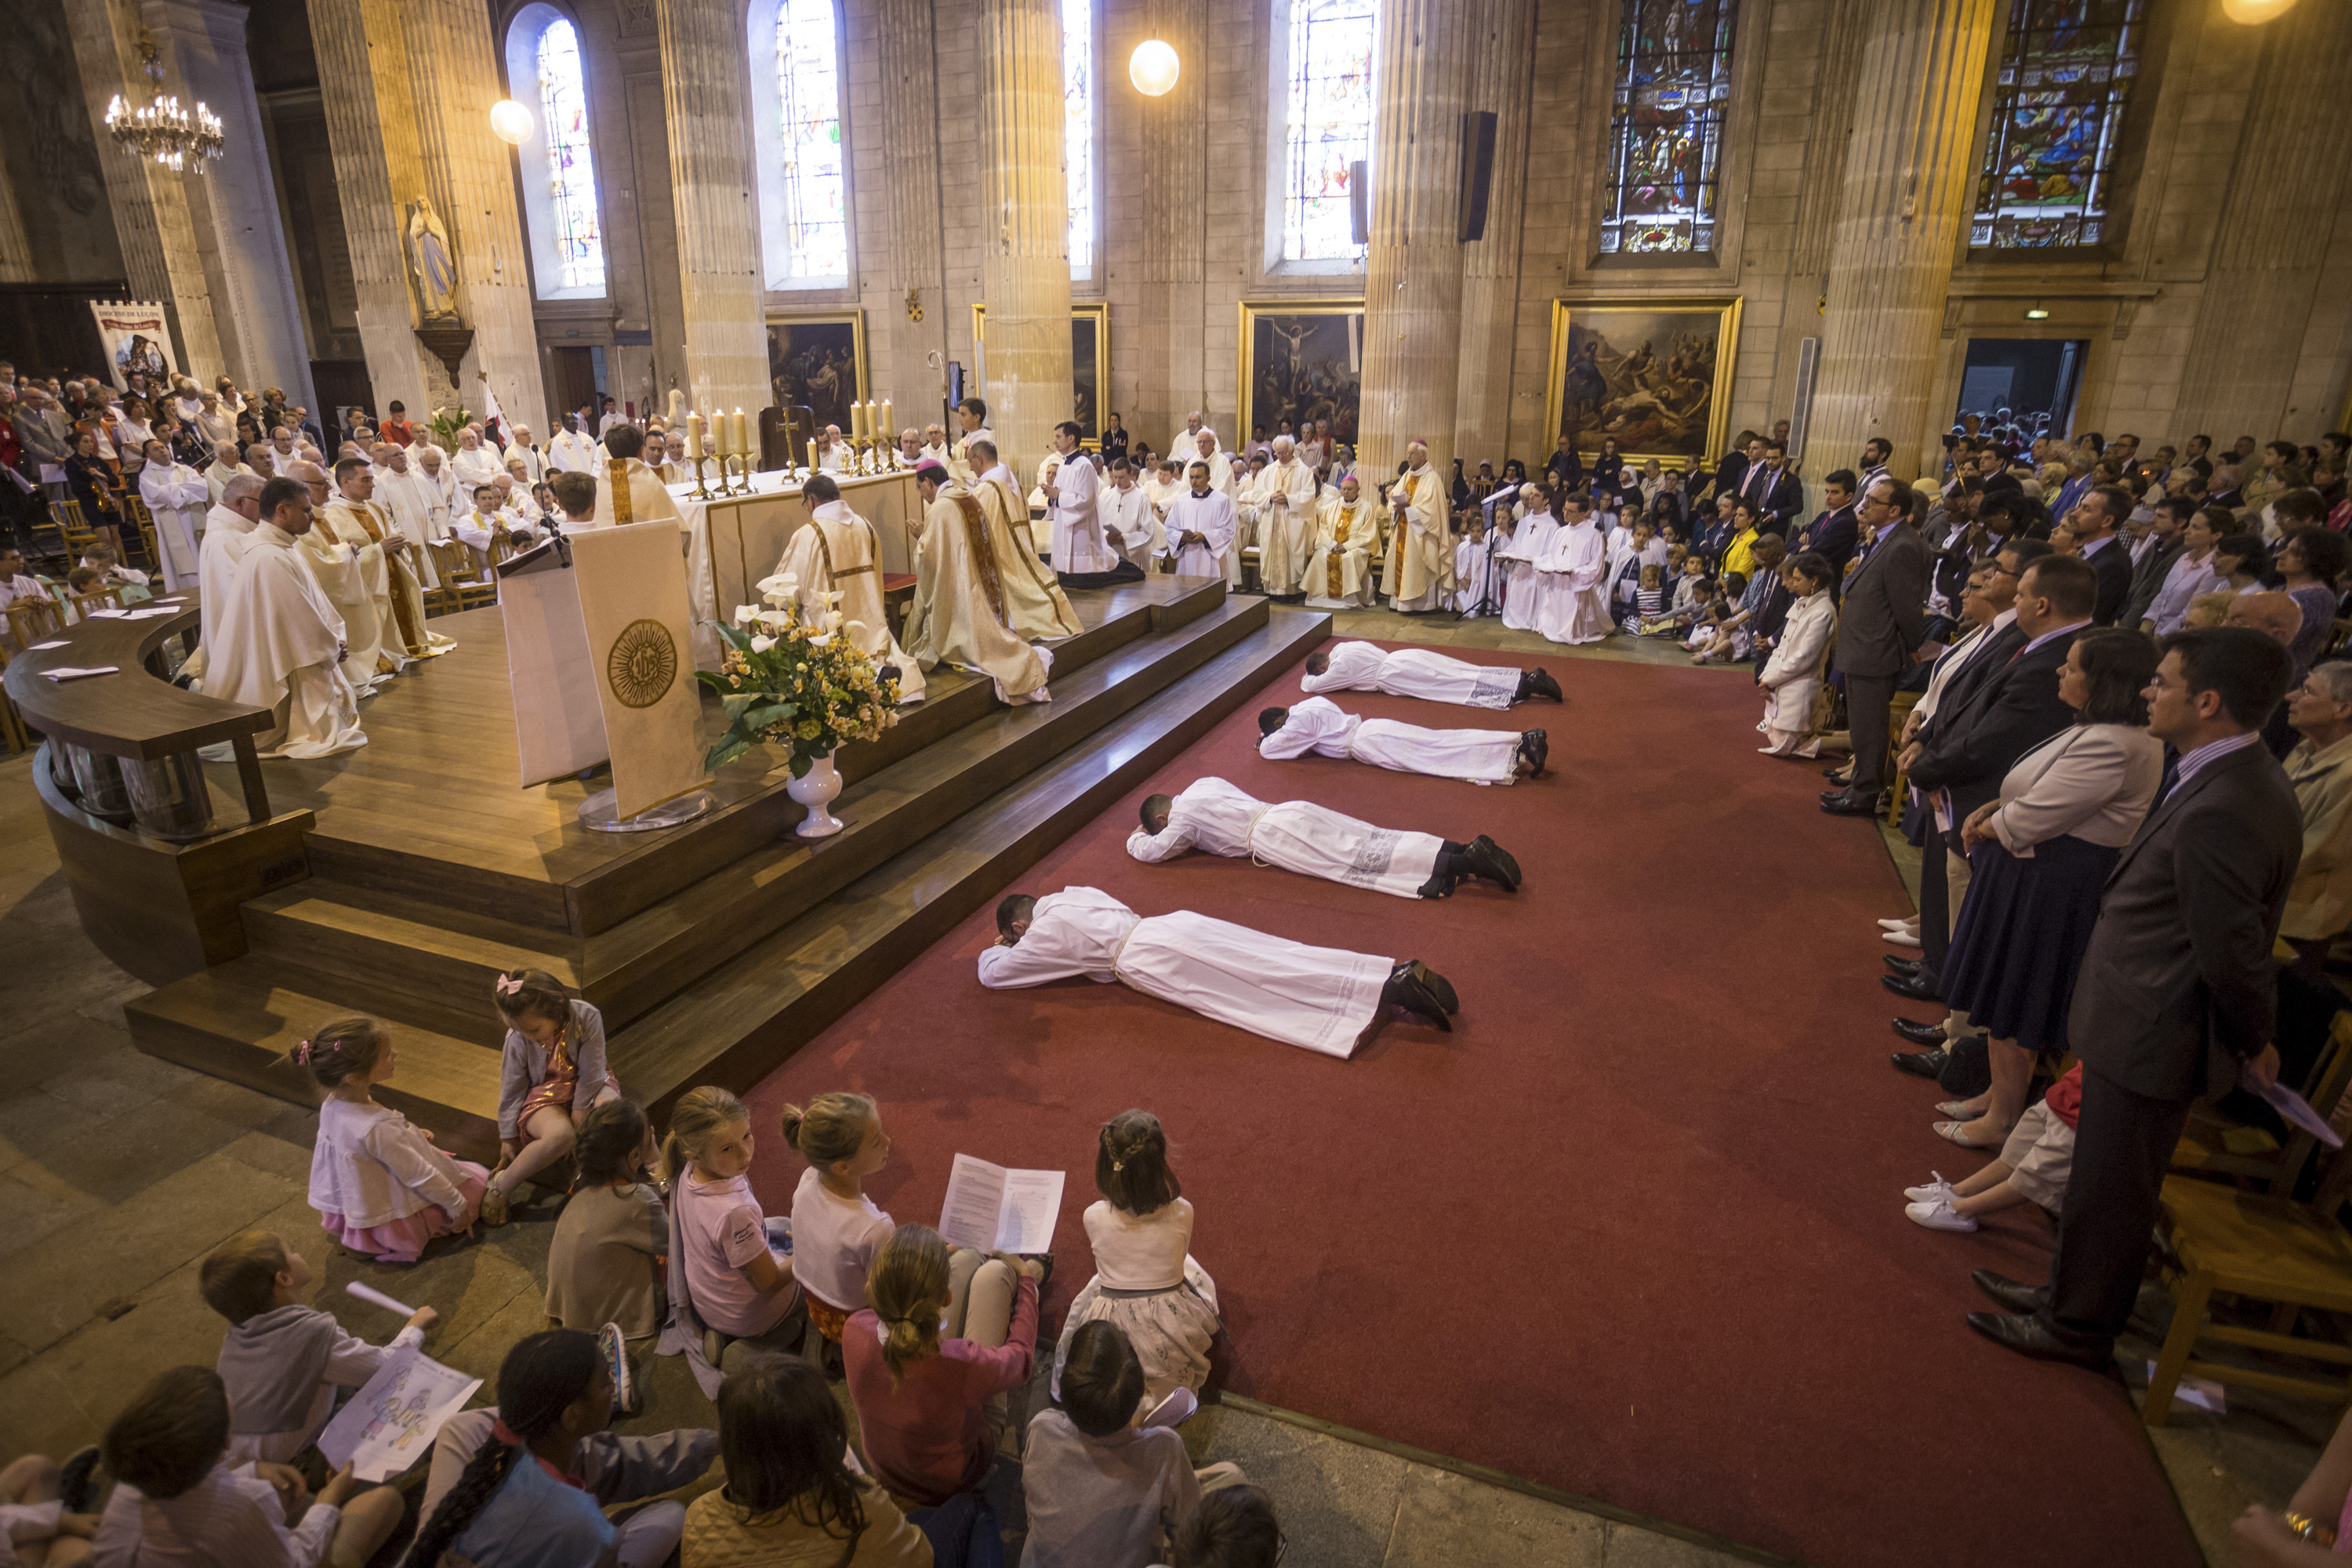 2016-06-18 Ordinations sacerdotales - MD - 106